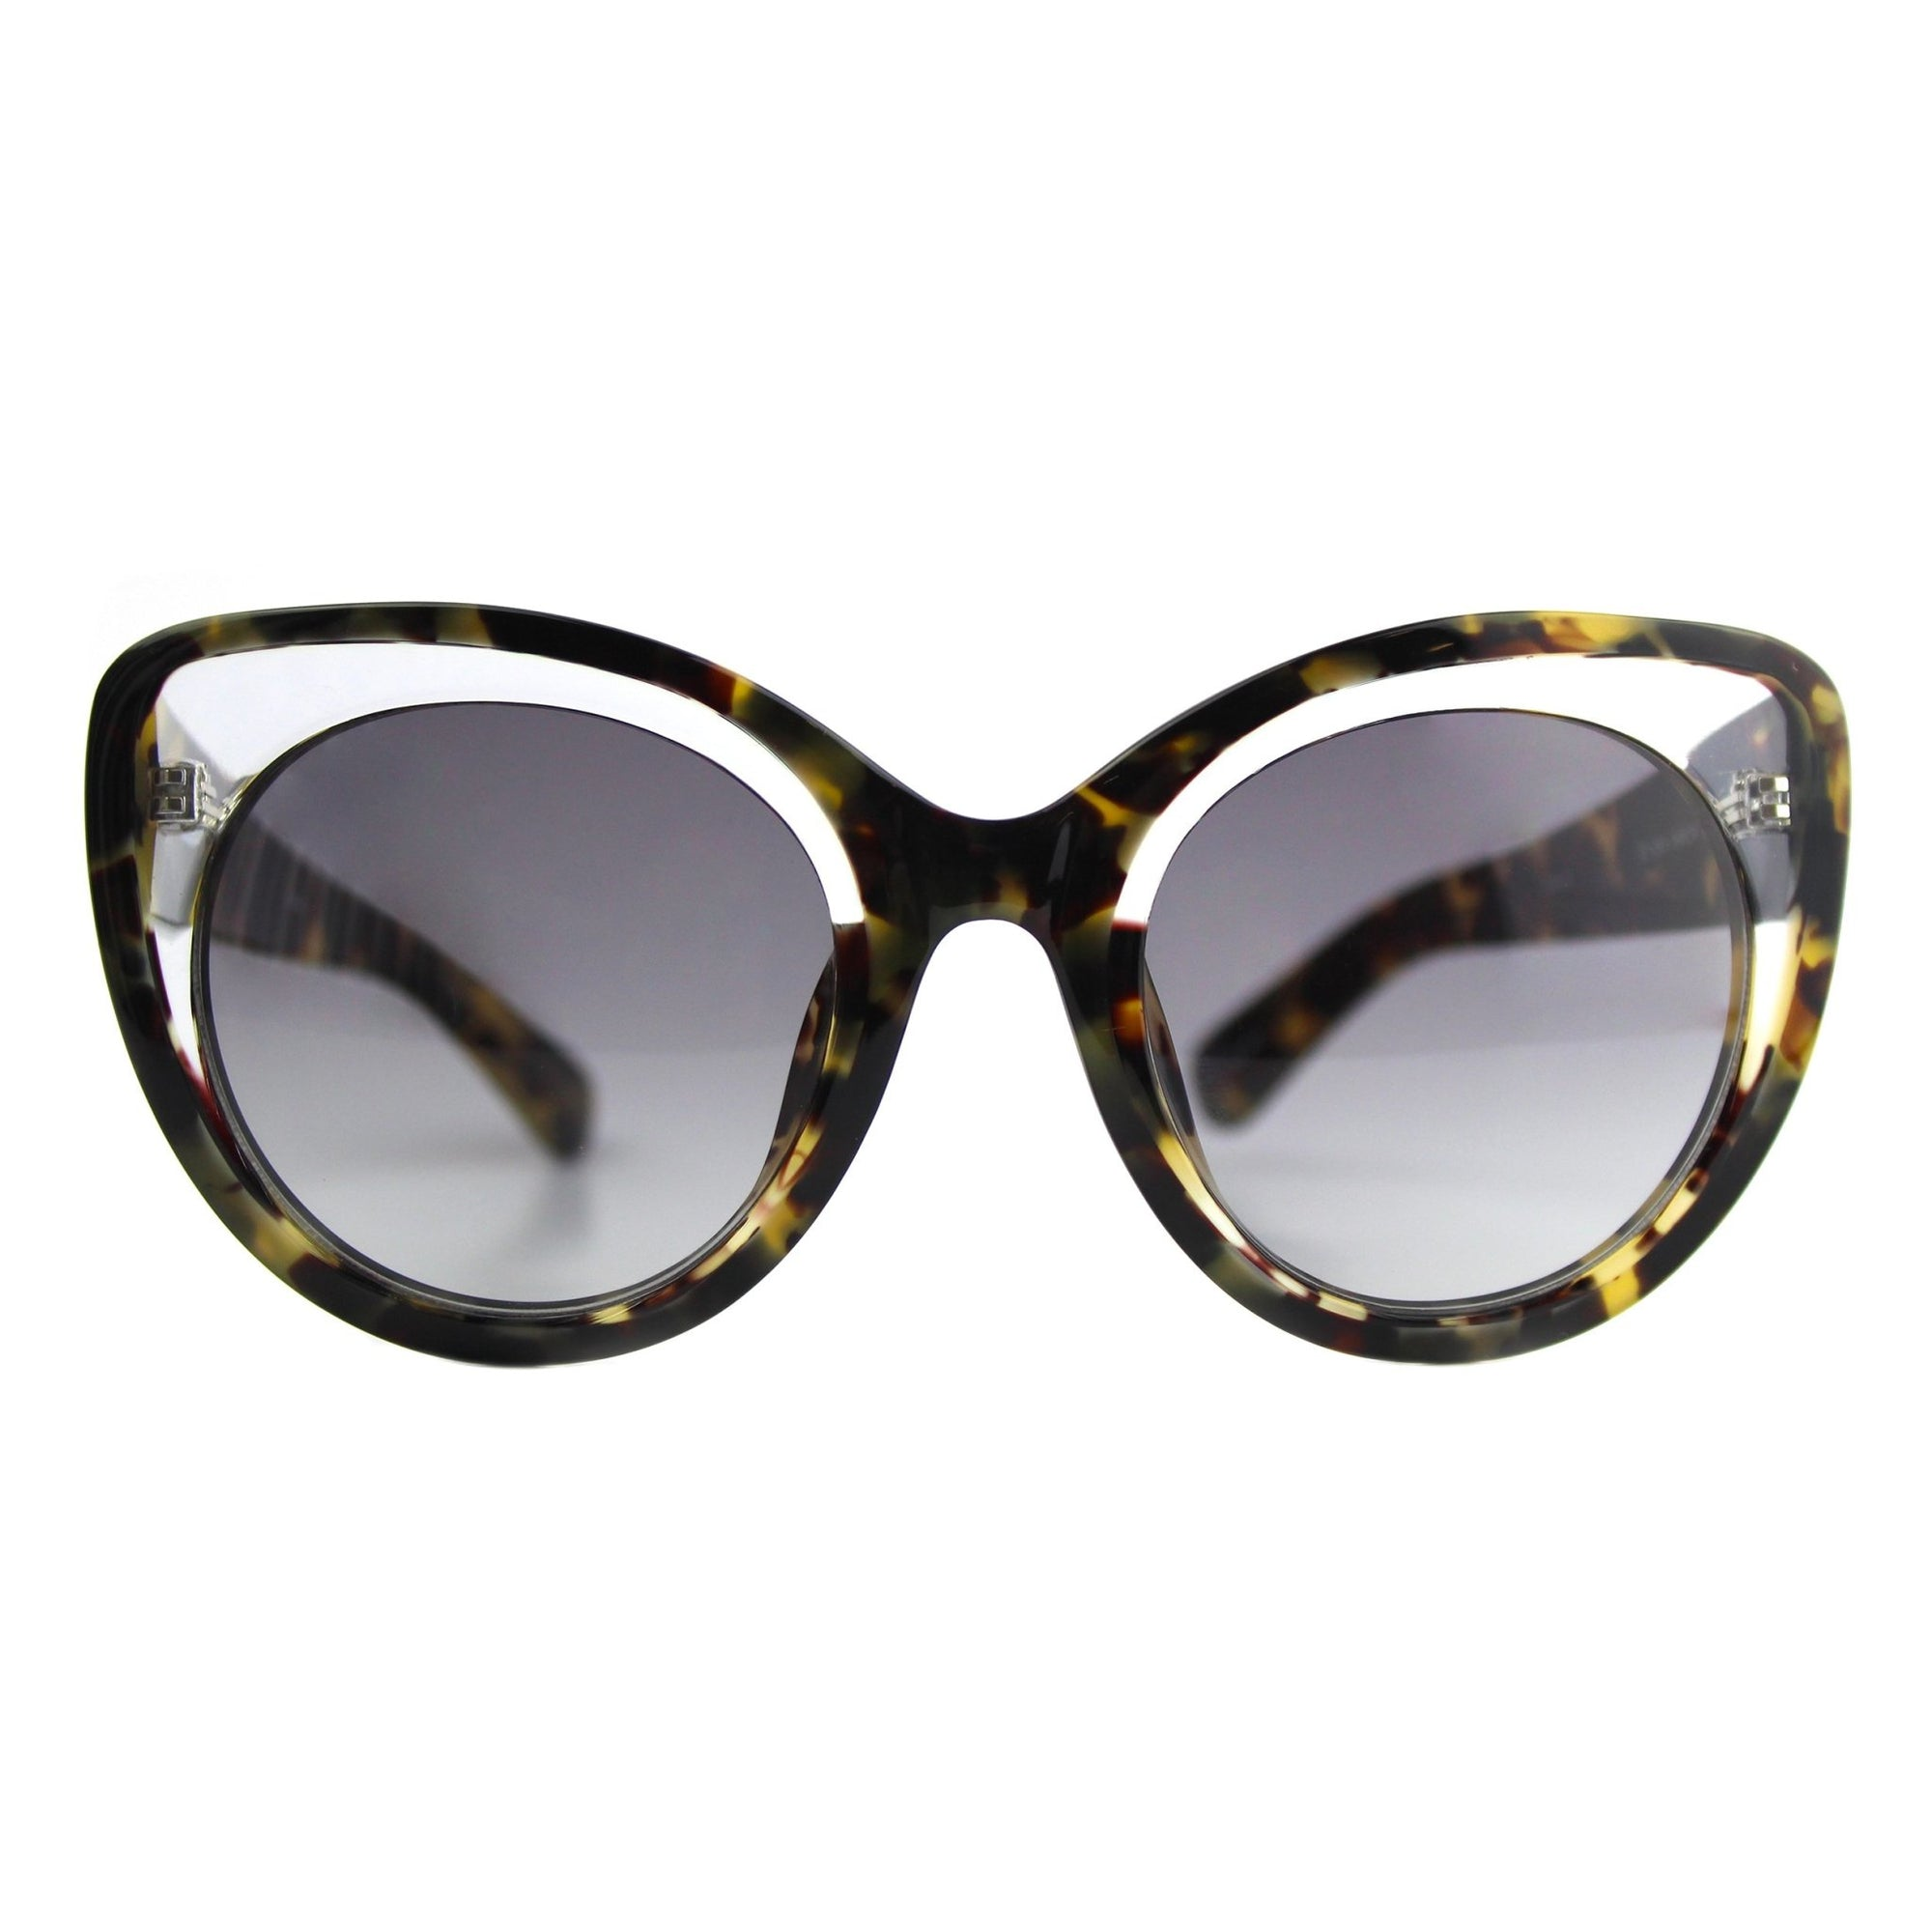 Erdem Women Sunglasses Cat Eye Tortoise Shell Clear with Grey Graduated Lenses Category 3 EDM14C5SUN - Watches & Crystals